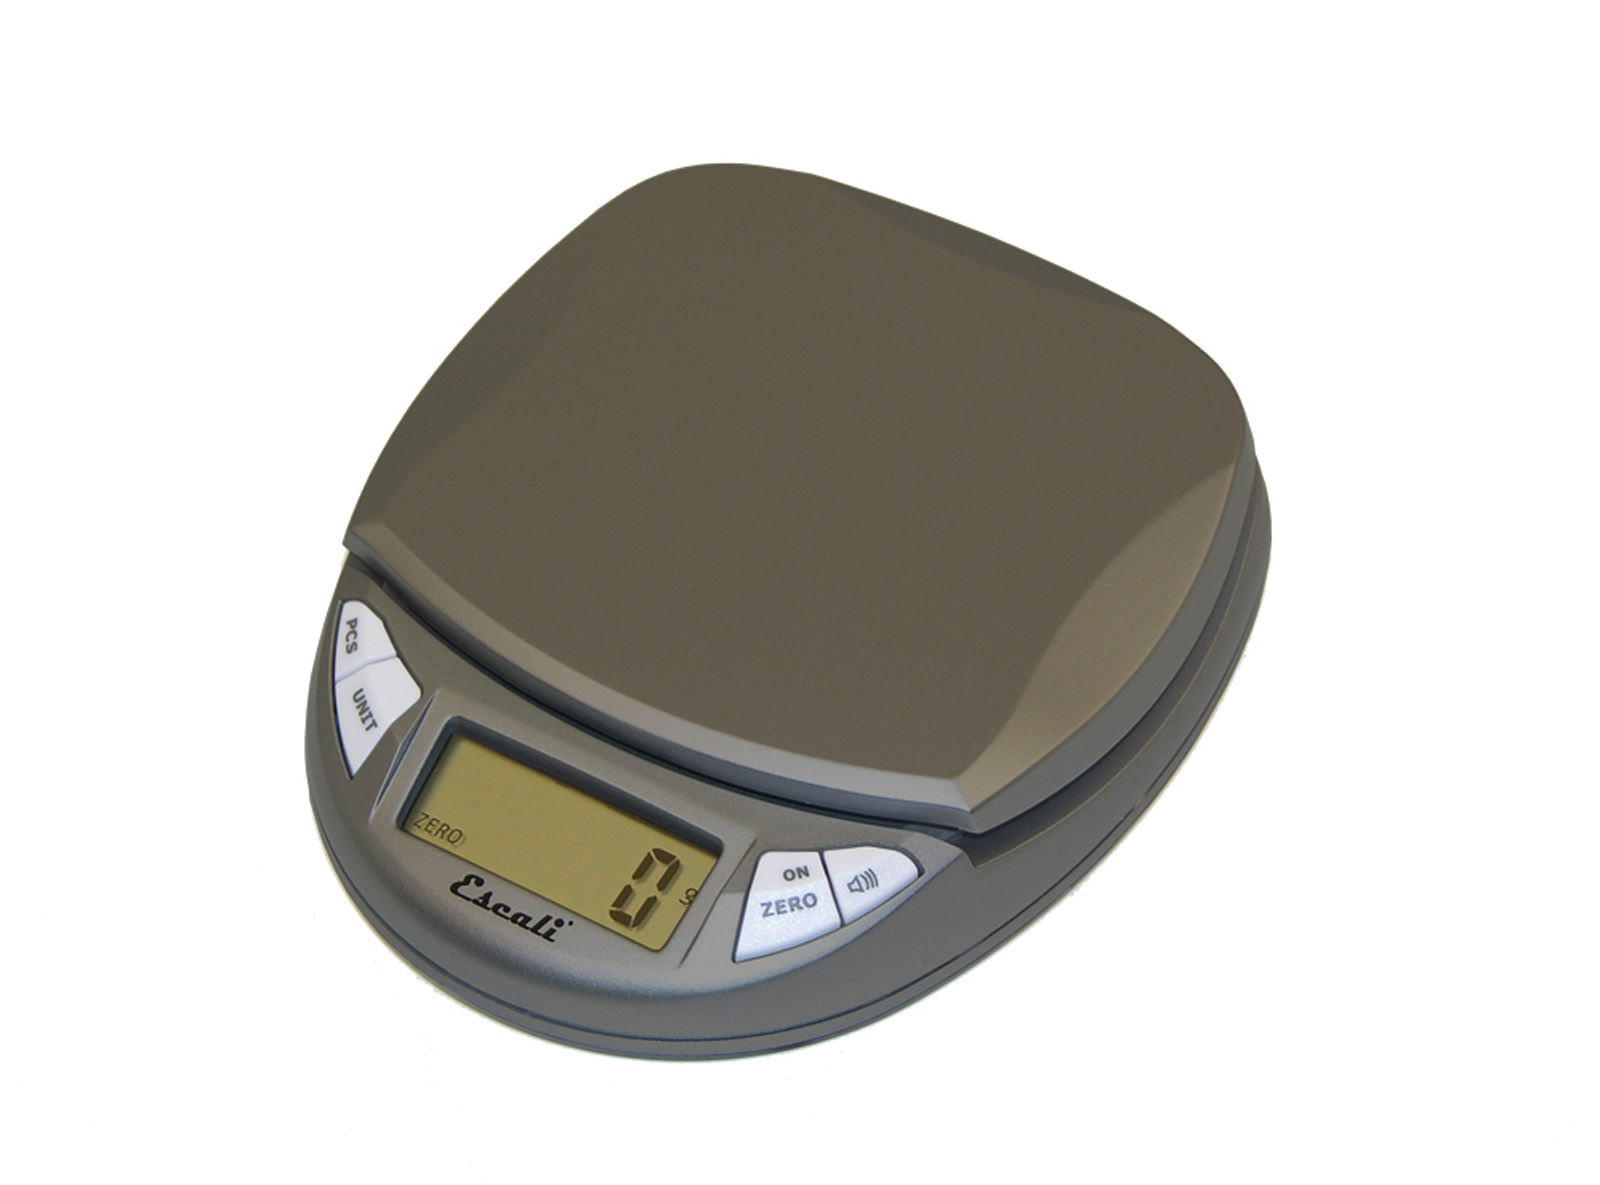 San Jamar SCDG500G scale, pocket